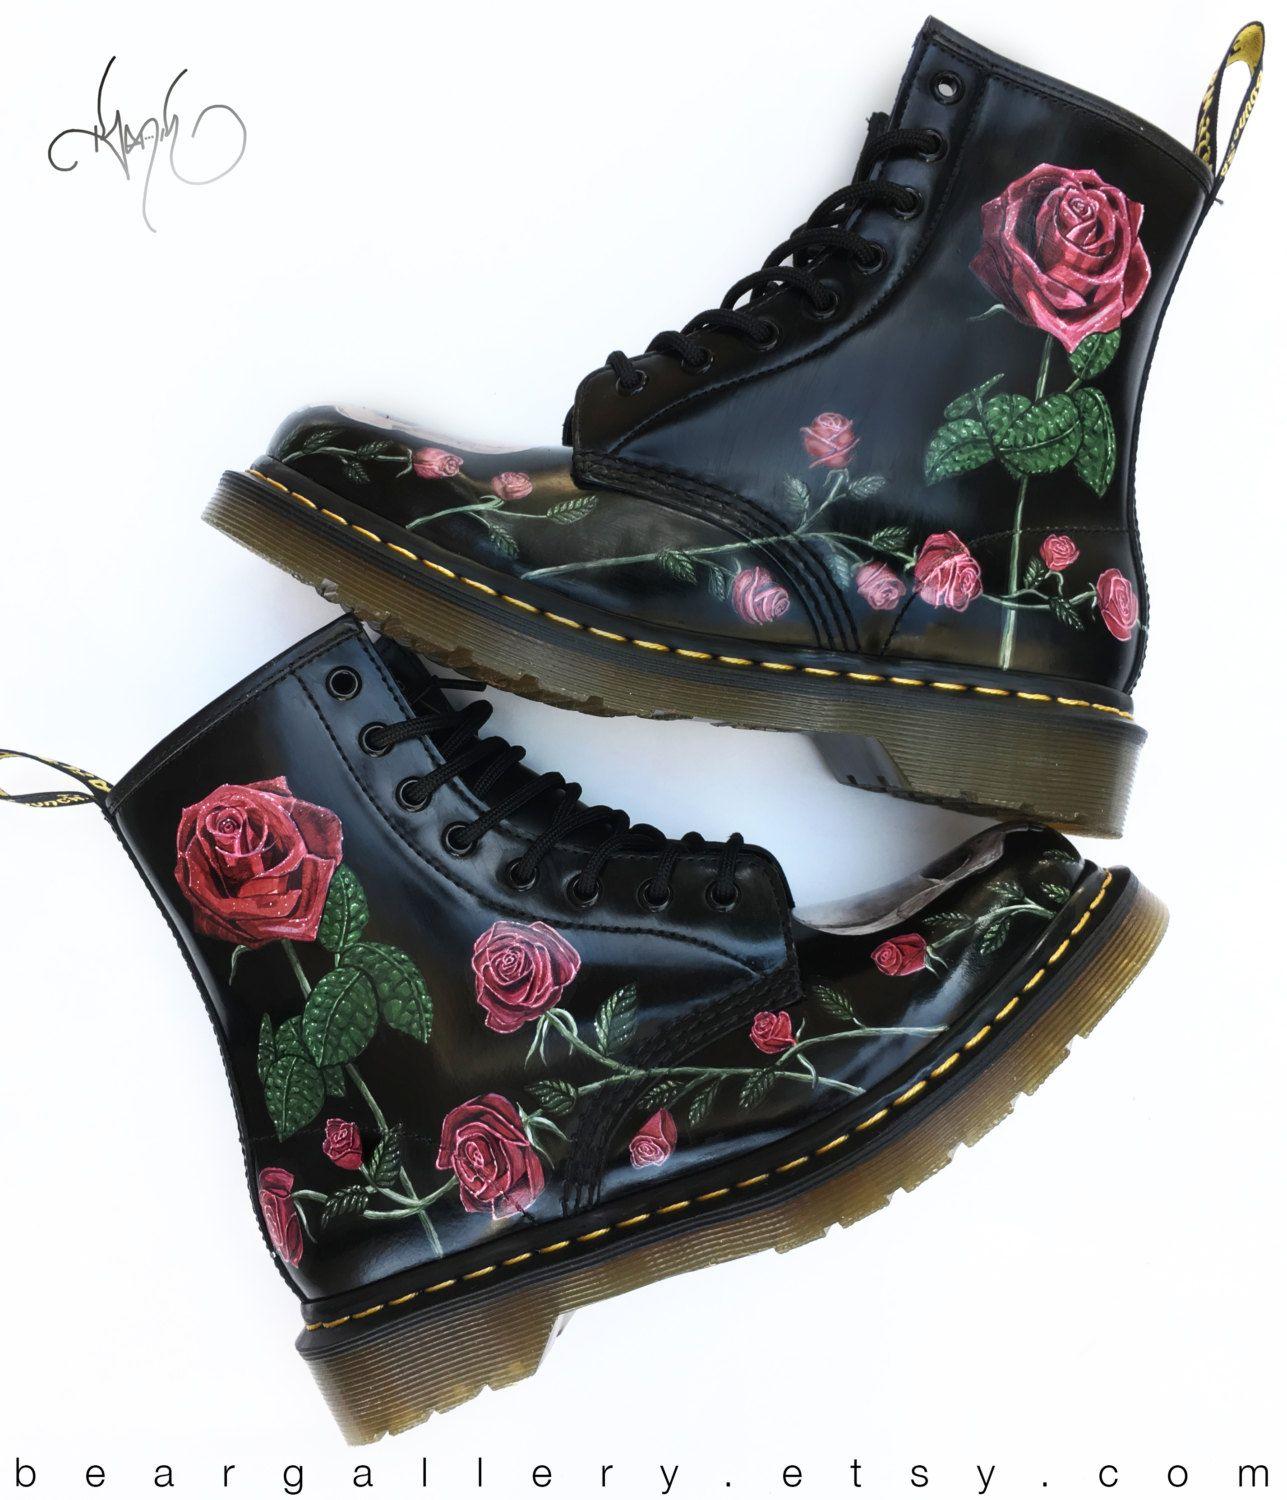 faf5b62c78970 Custom Doc Martens Boots - Roses   Skulls Hand Painted (available without  Skulls!)